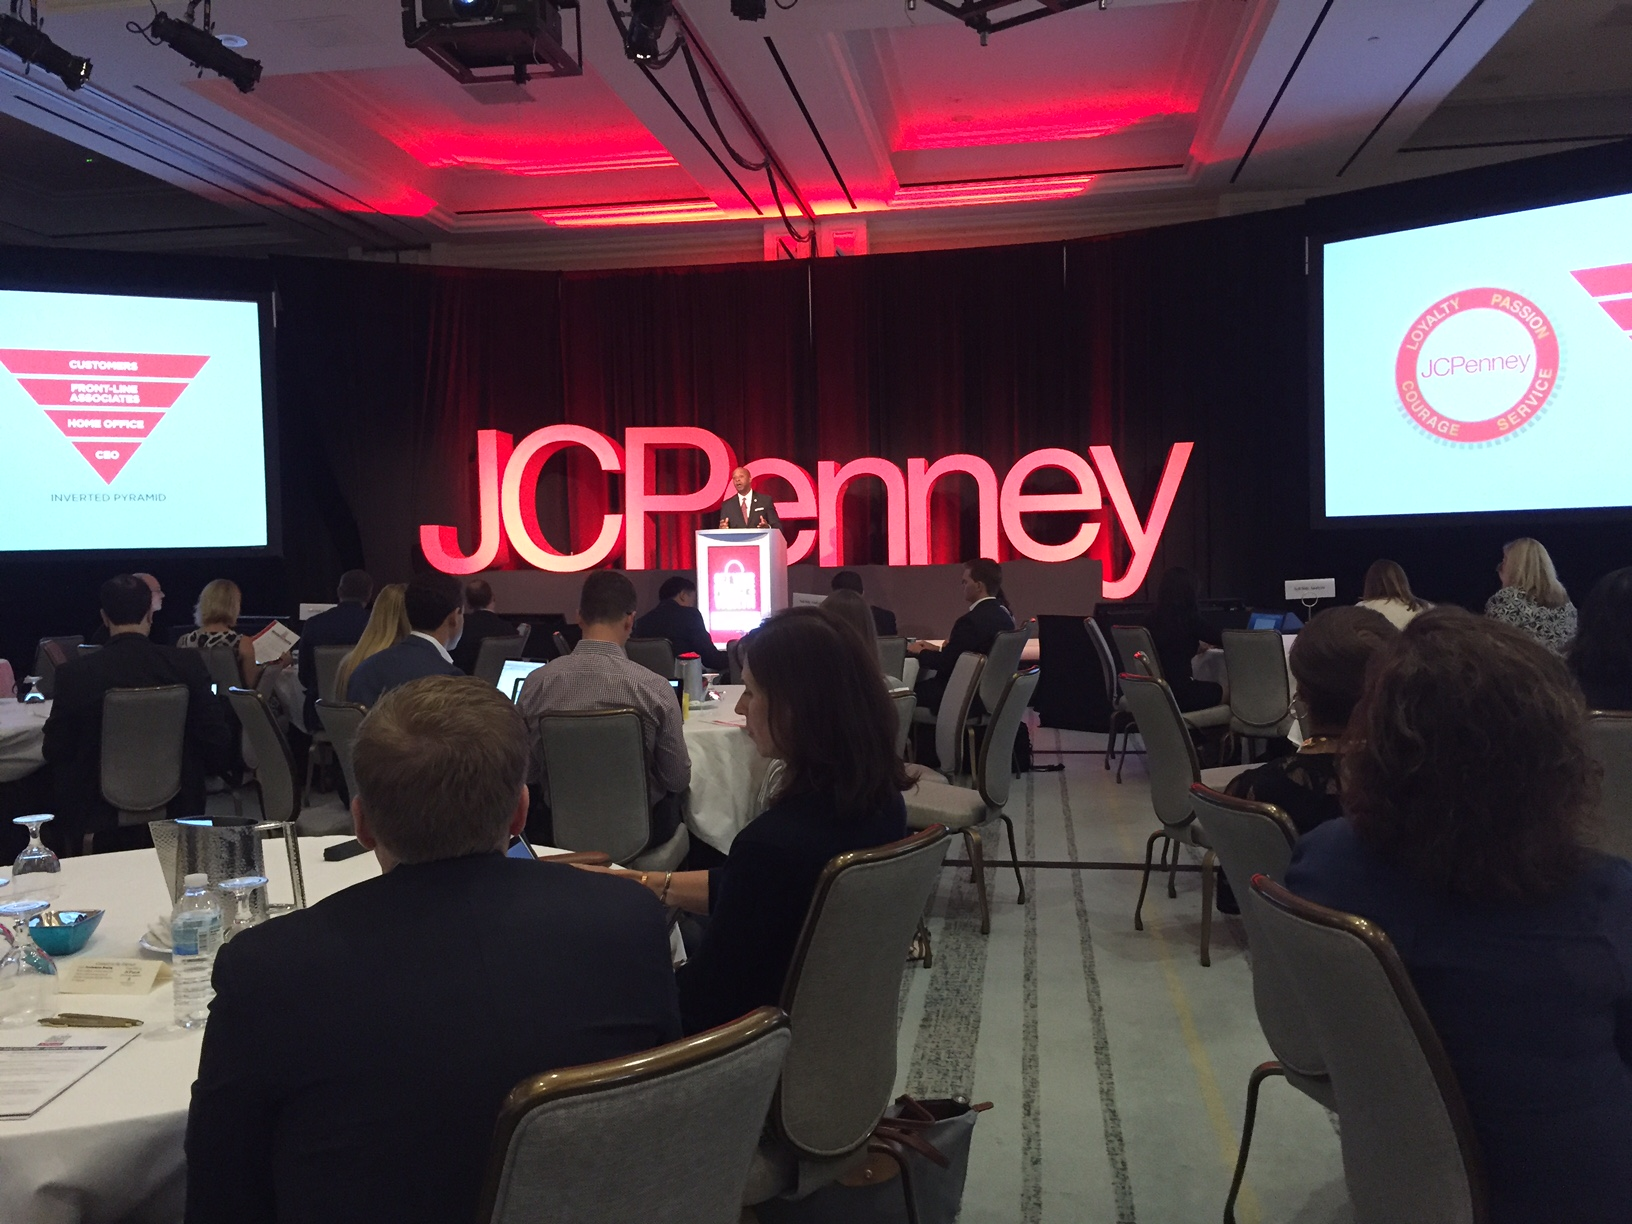 Jcp credit center login - J C Penney Tells Analysts What To Expect Next More Private Brands Faster Retail Dallas News